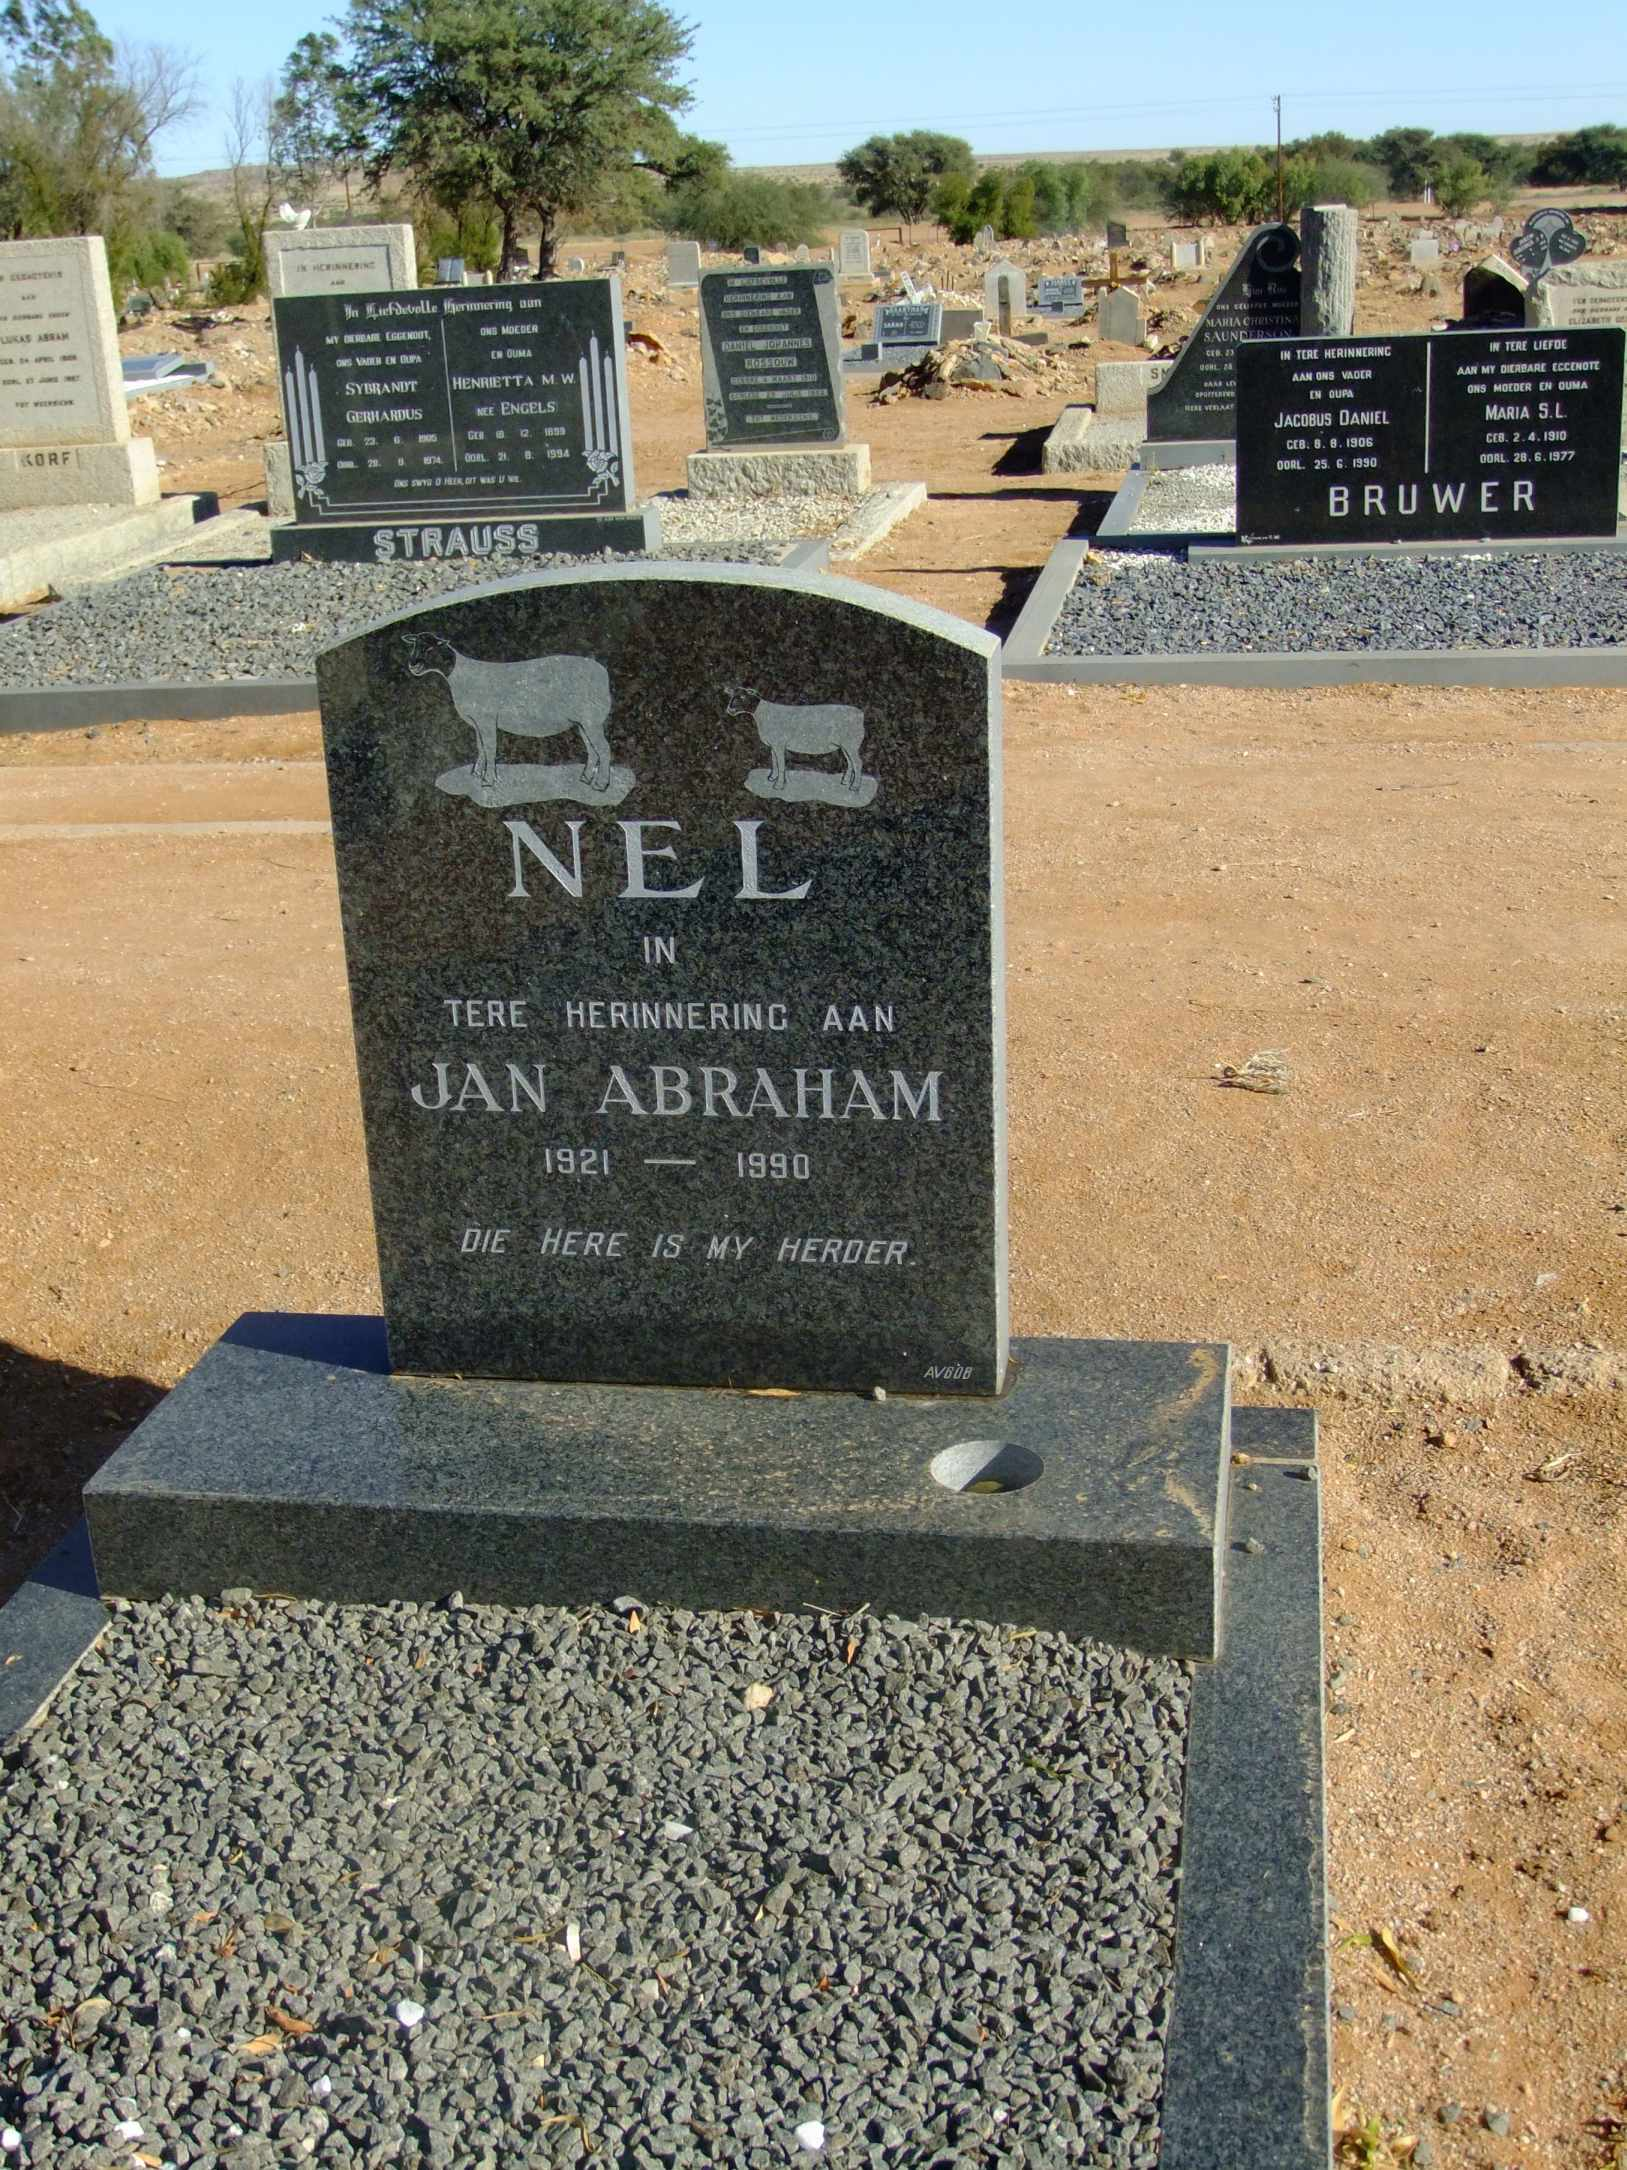 Nel, Jan Abraham born 1921 died 1990